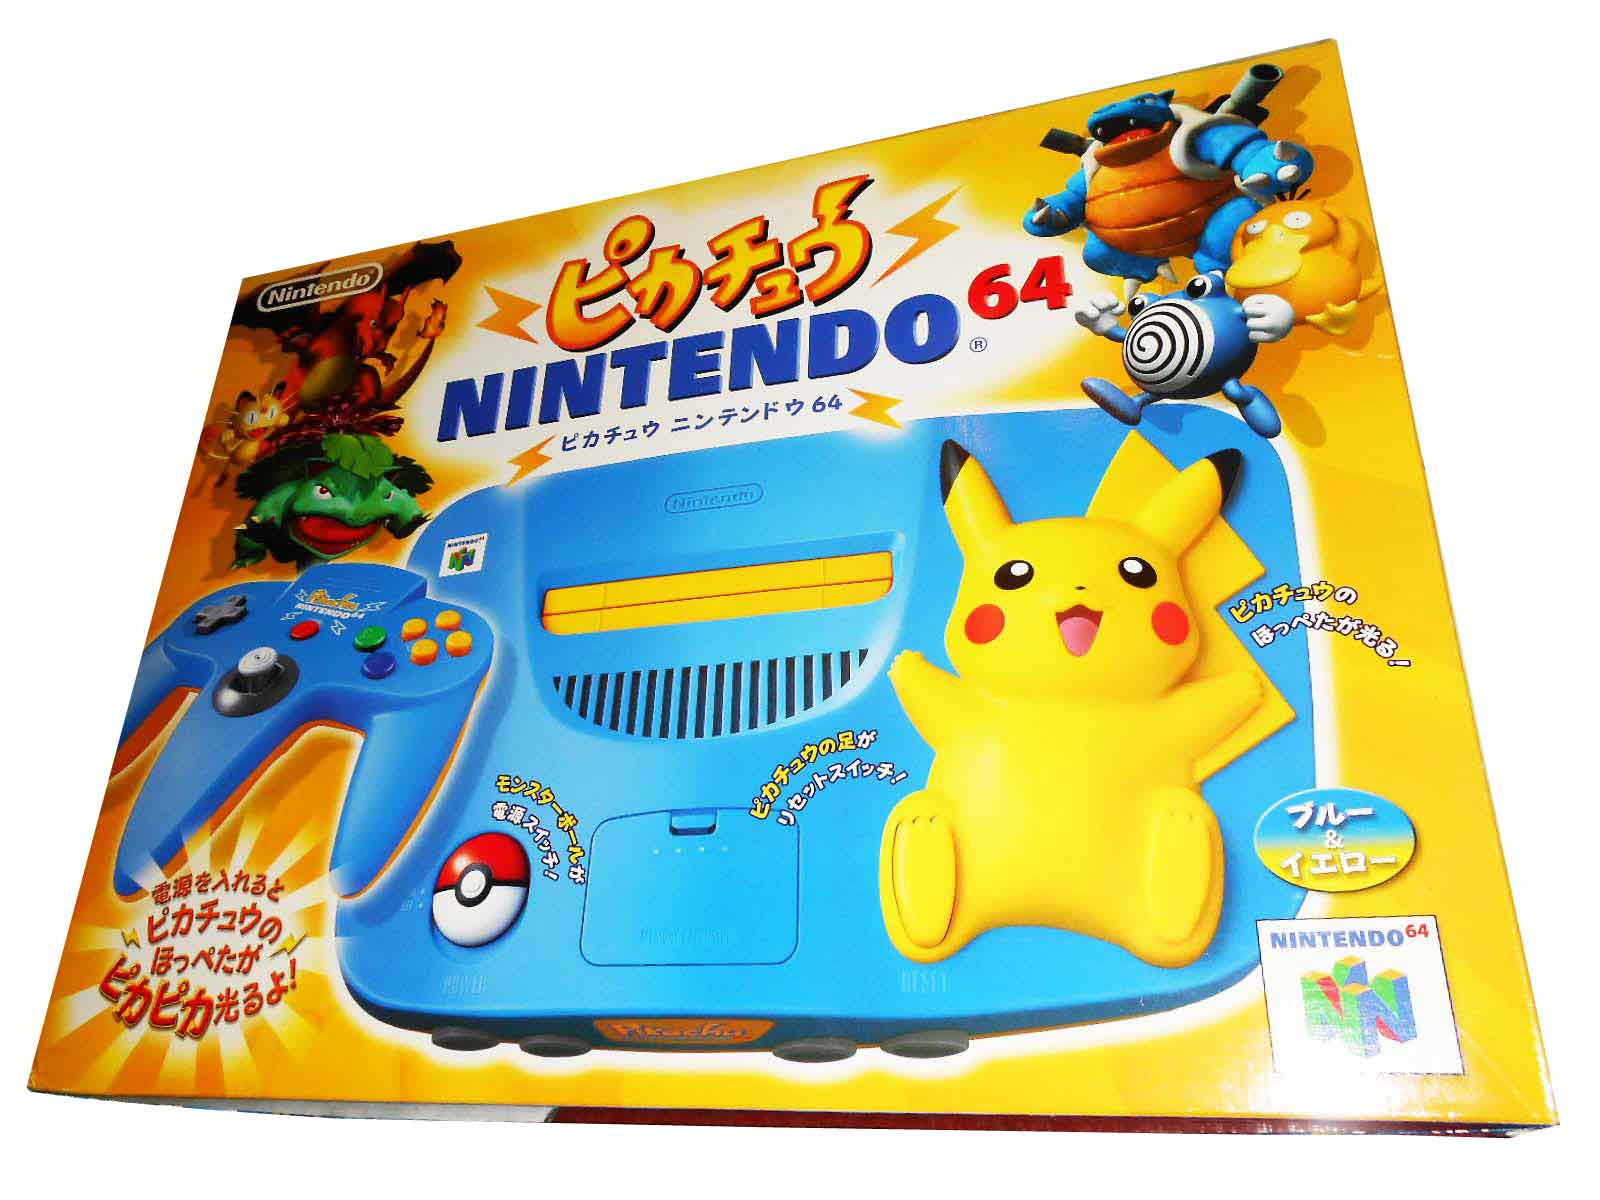 Nintendo 64 Pikachu Retropixl Retrogaming retro gaming Rare Console Collector Limited Edition Japan Import